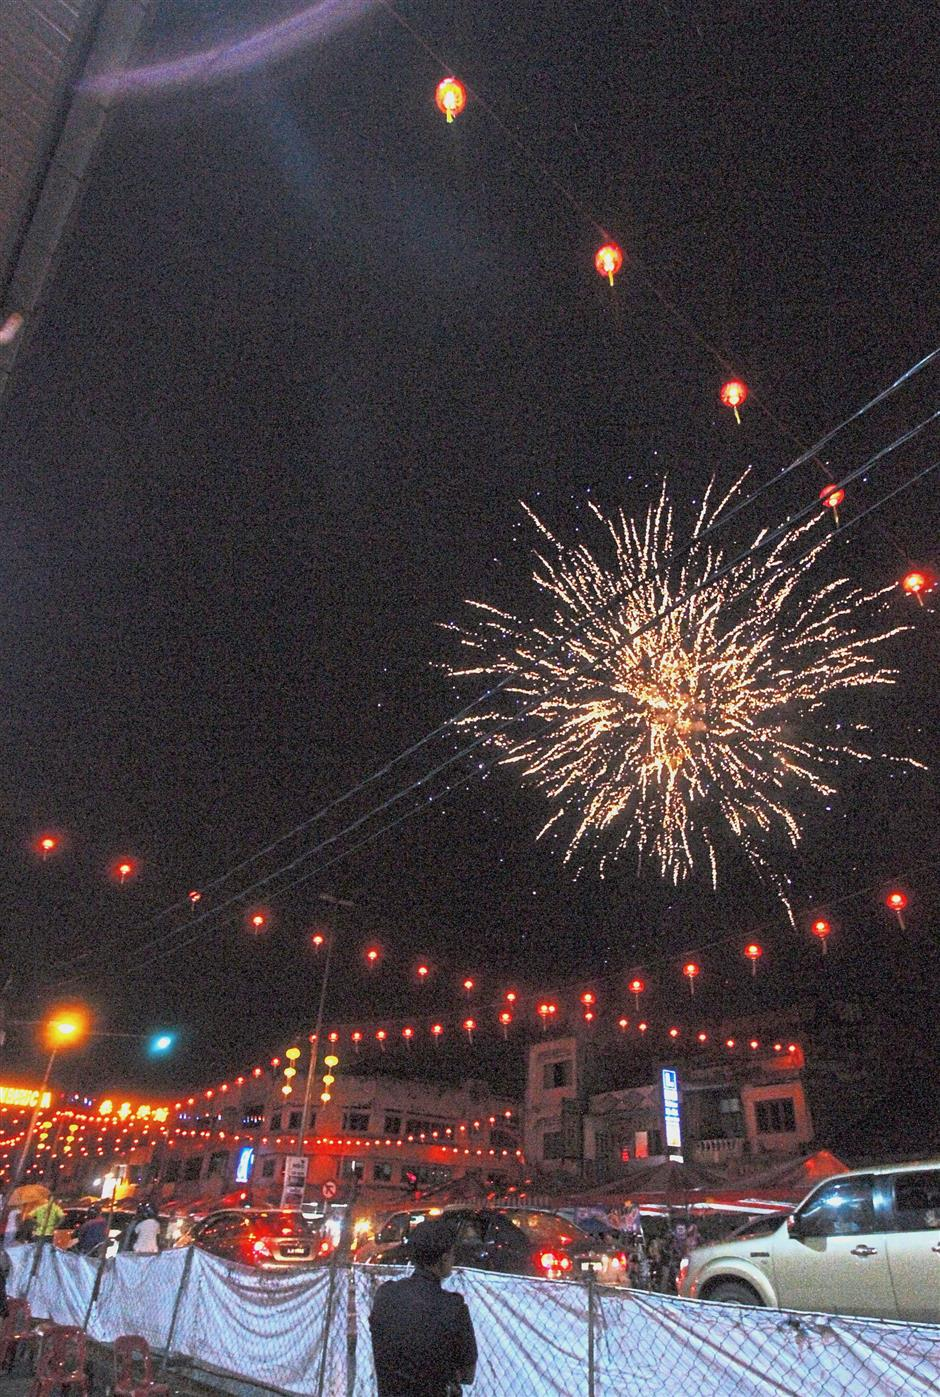 A fireworks display lighting up the night sky in Jelapang.